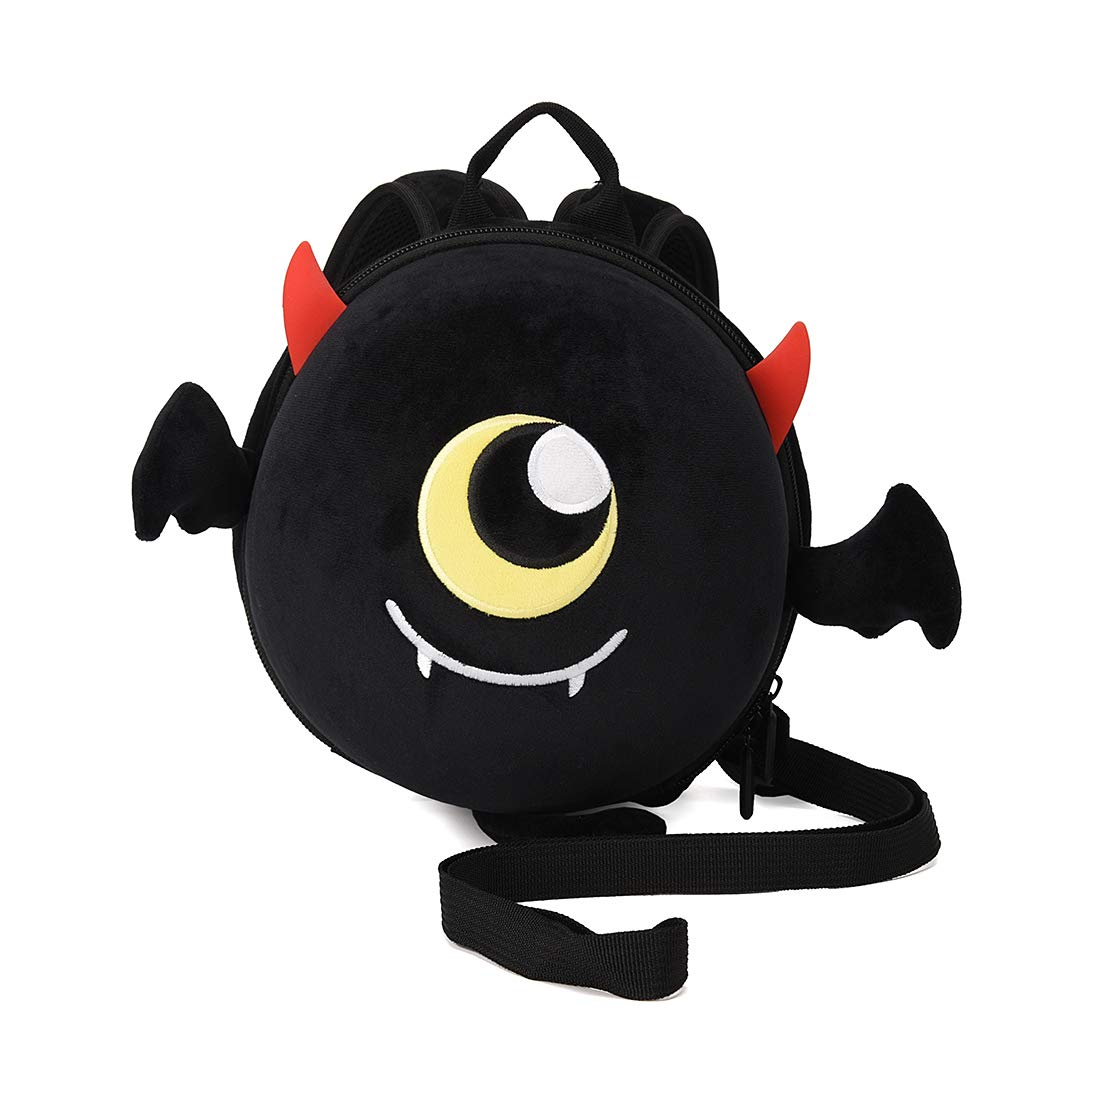 Baby Boy Backpack with Leash Unisex Backpack with Safety Harness Plush Anti Lost Bag with Detachable Tether Daycare (Black)